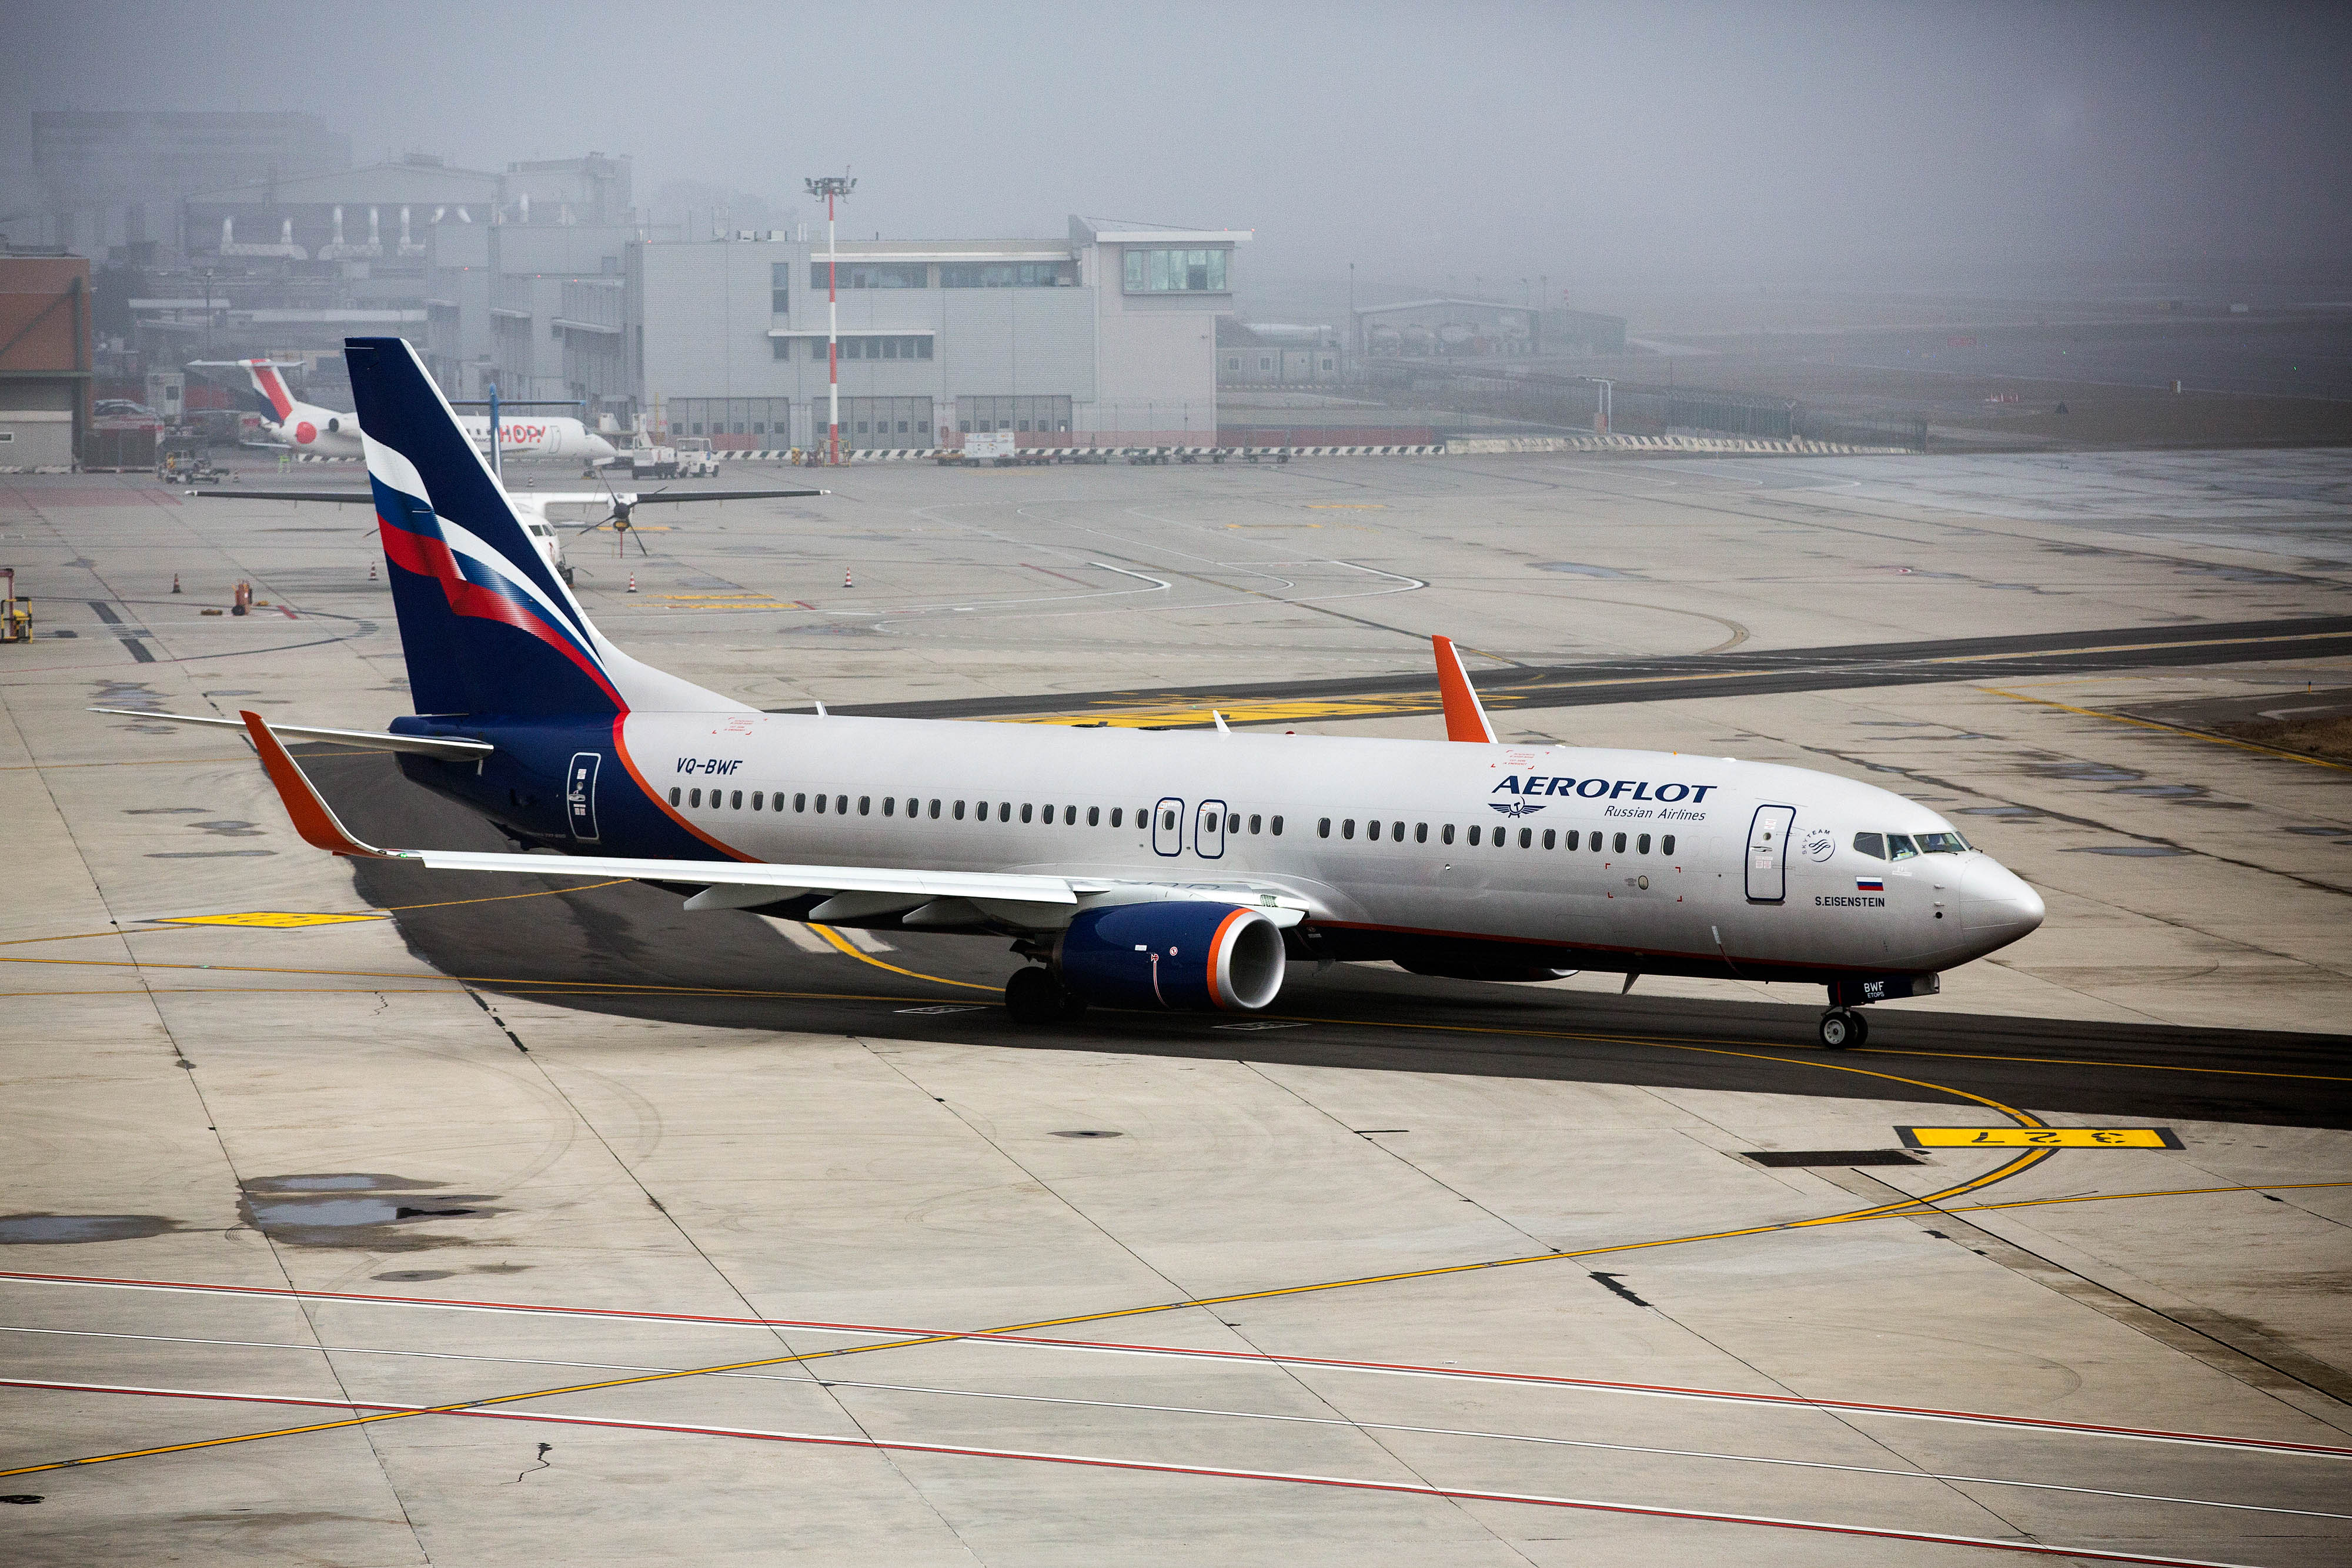 A Boeing Co 787 passenger aircraft, operated by Aeroflot - Russian Airlines PJSC, taxis on the tarmac at Venice Marco Polo Airport (VCE) in Venice, Italy, on Monday, Feb. 1, 2016.